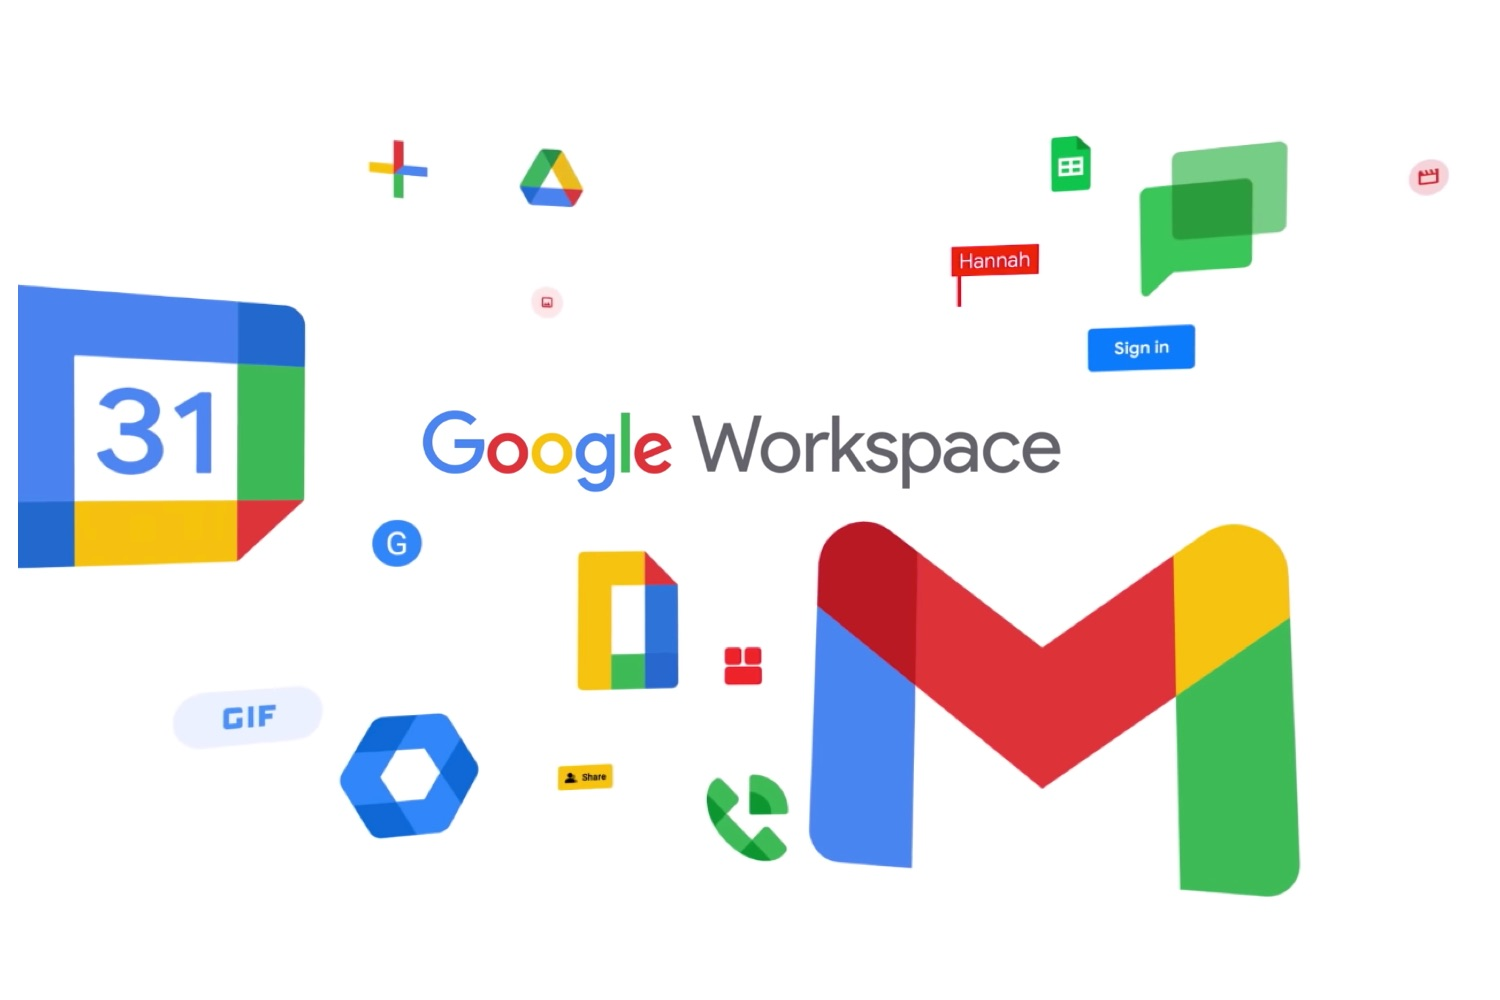 google workspace, g suite workspace